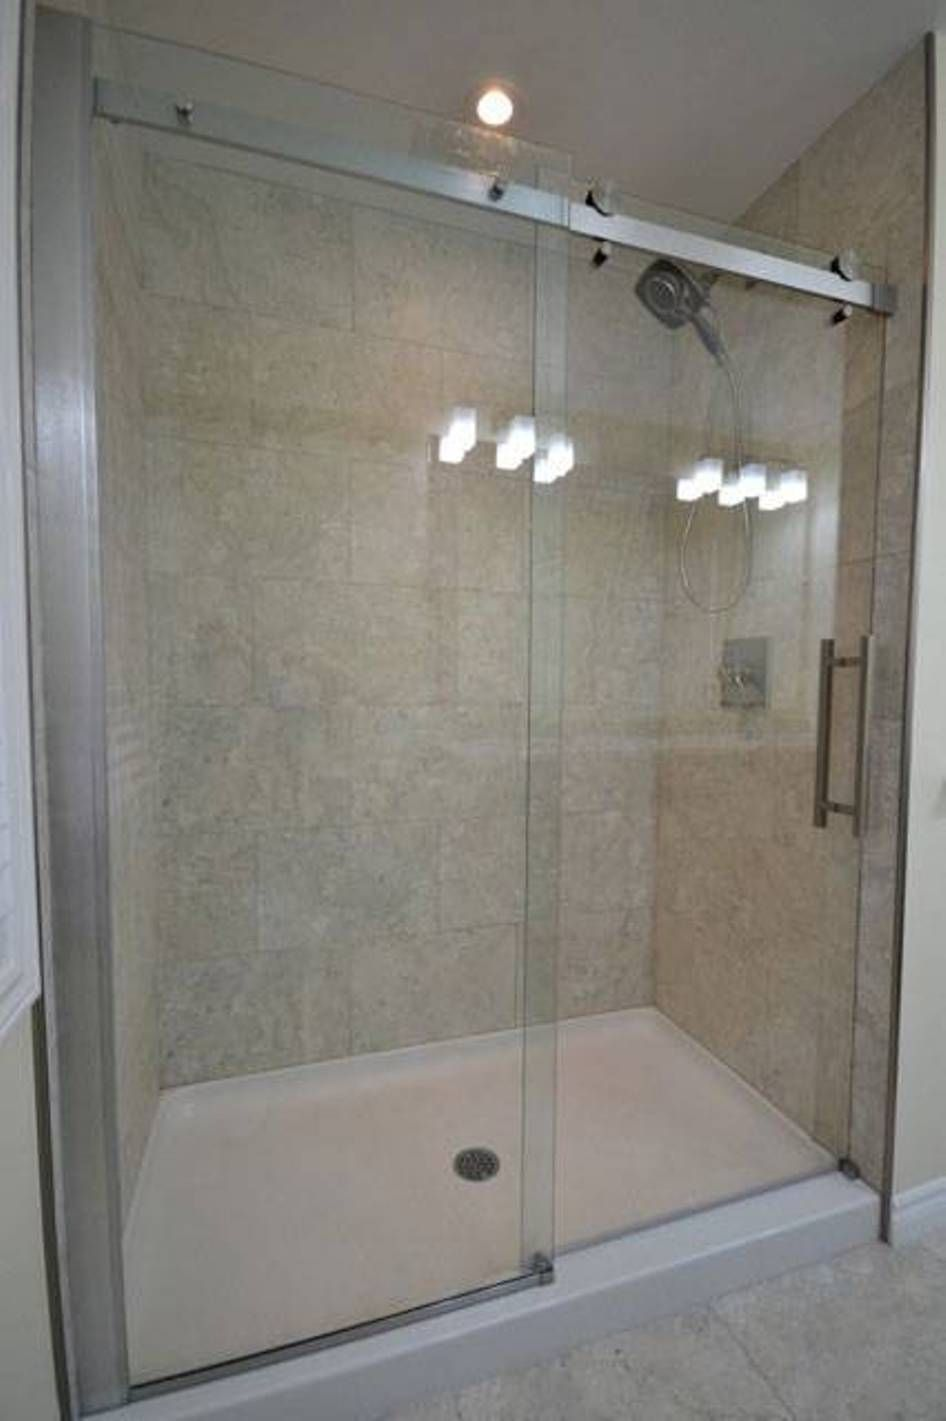 shower pan with sliding glass door in bathroom bathroom remodel shower pan with sliding glass door in bathroom